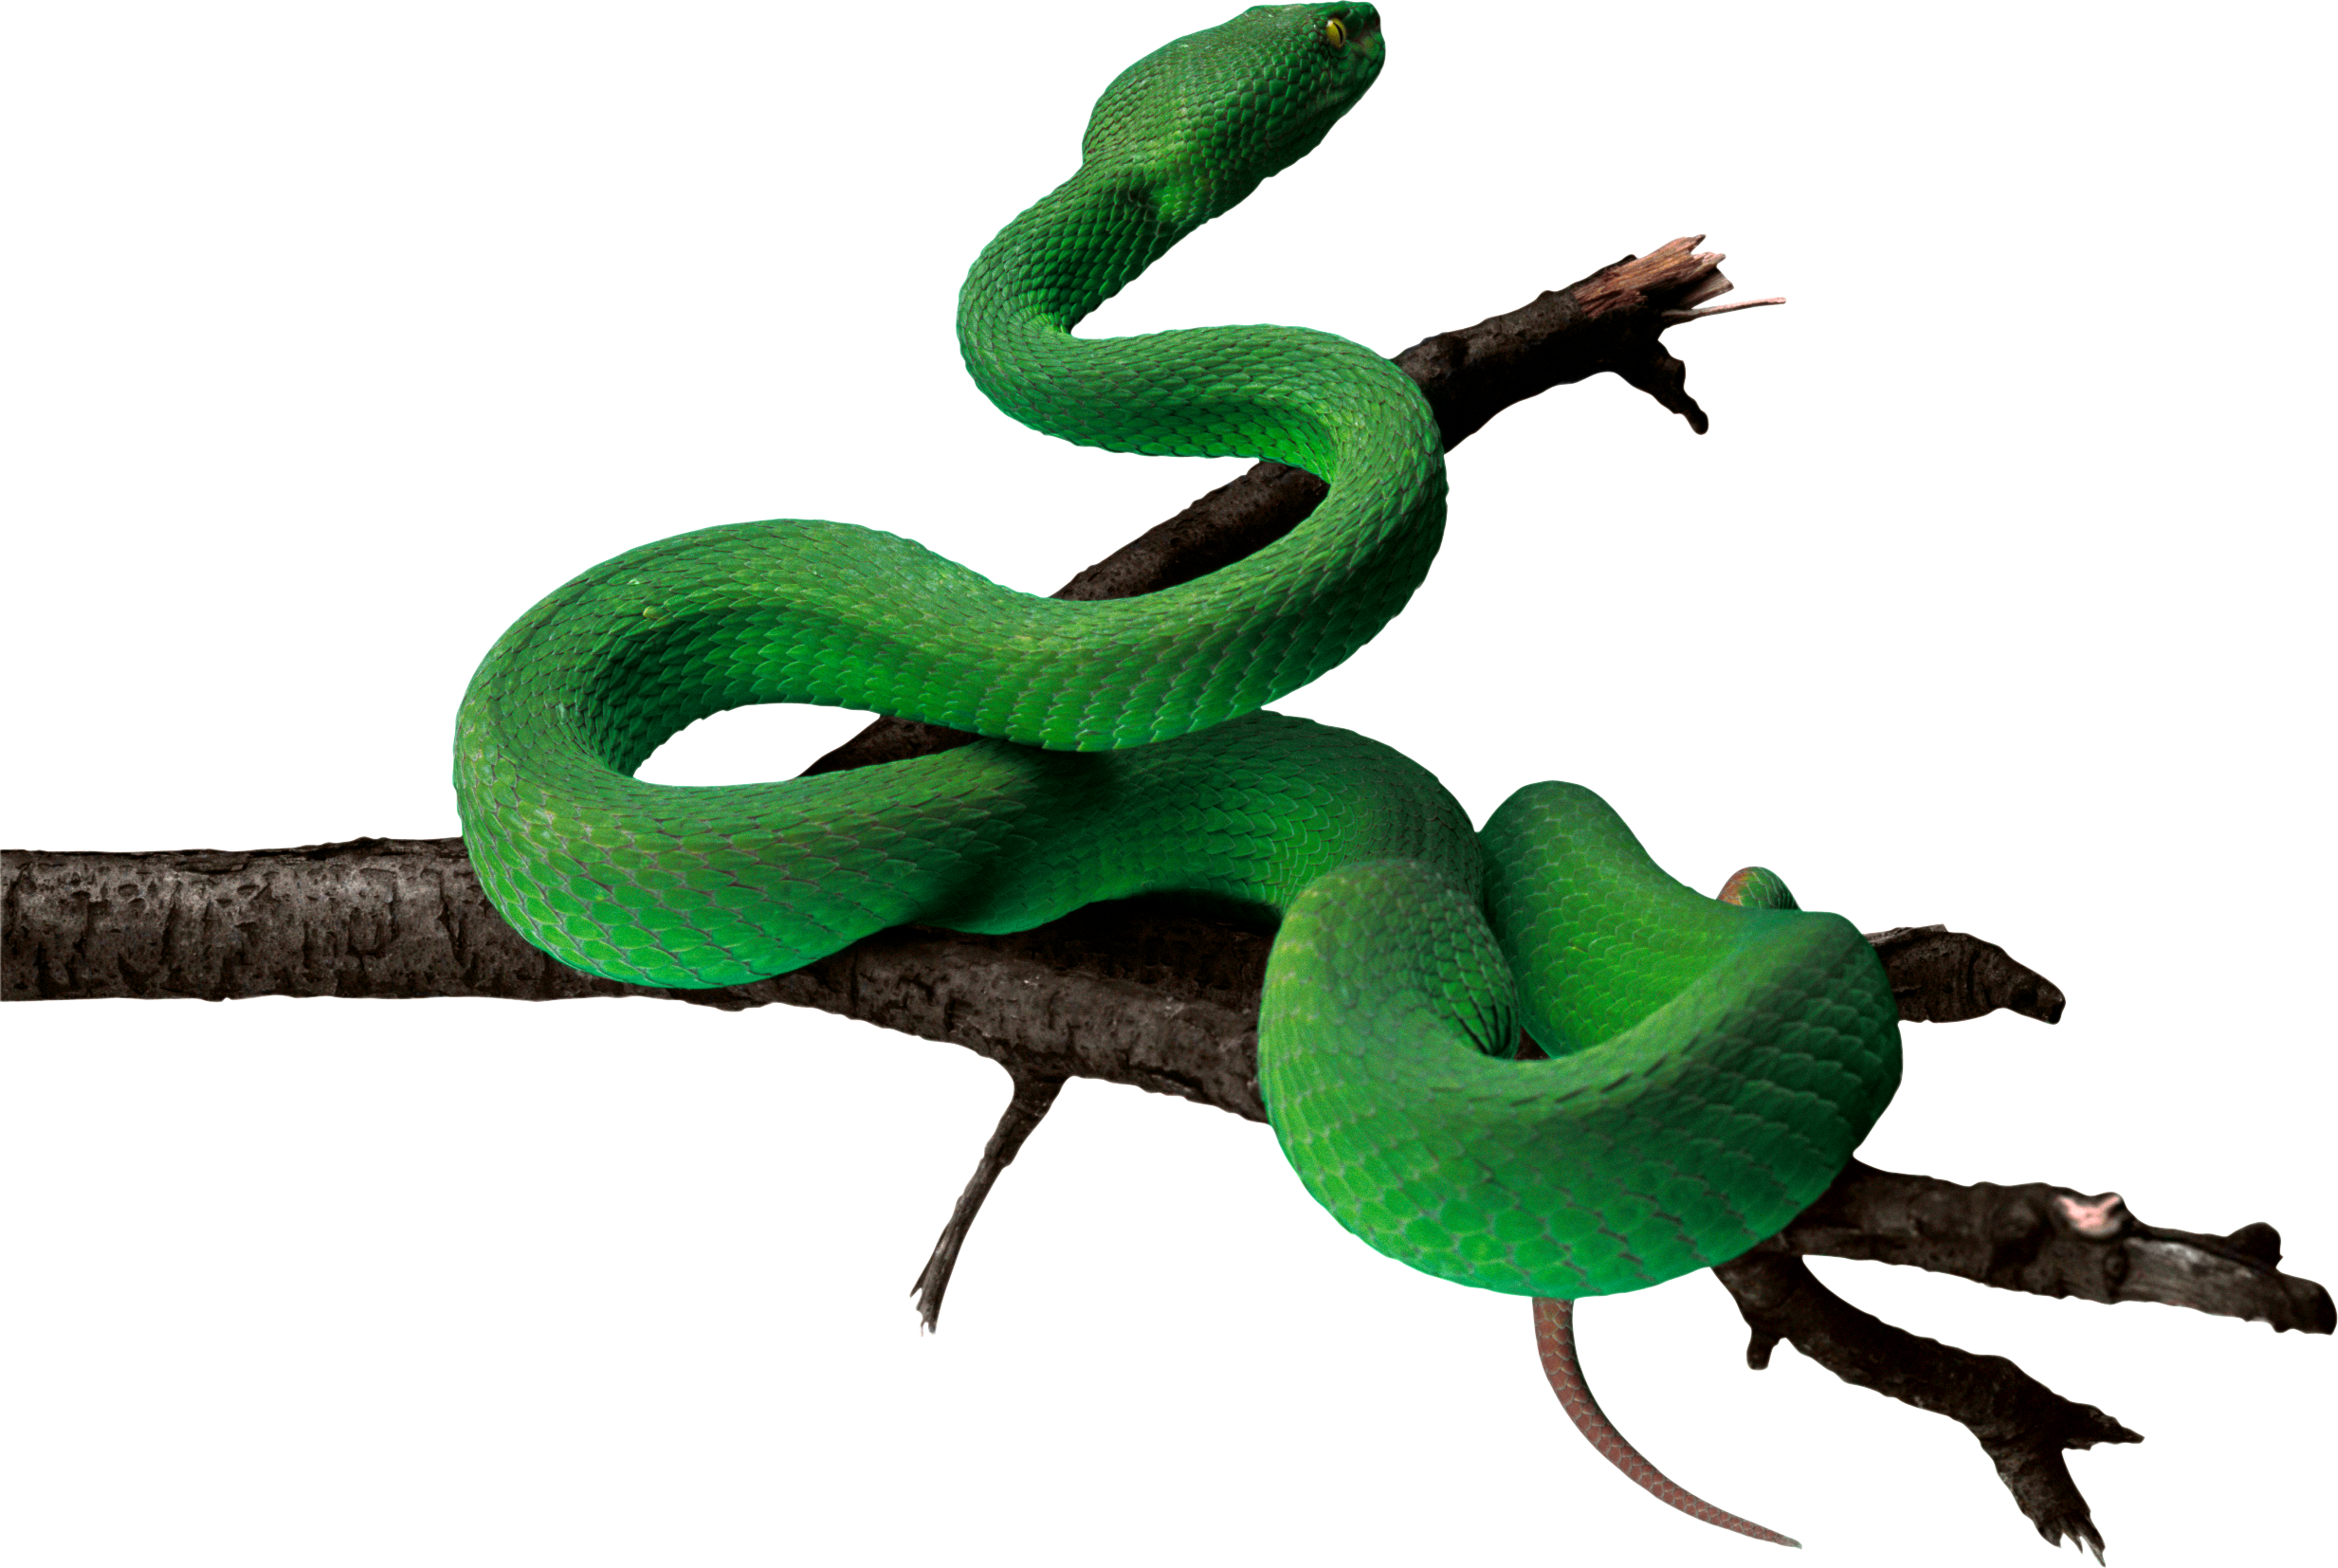 Brown tree snake clipart png black and white stock Green snake PNG | Animal PNG | Pinterest png black and white stock